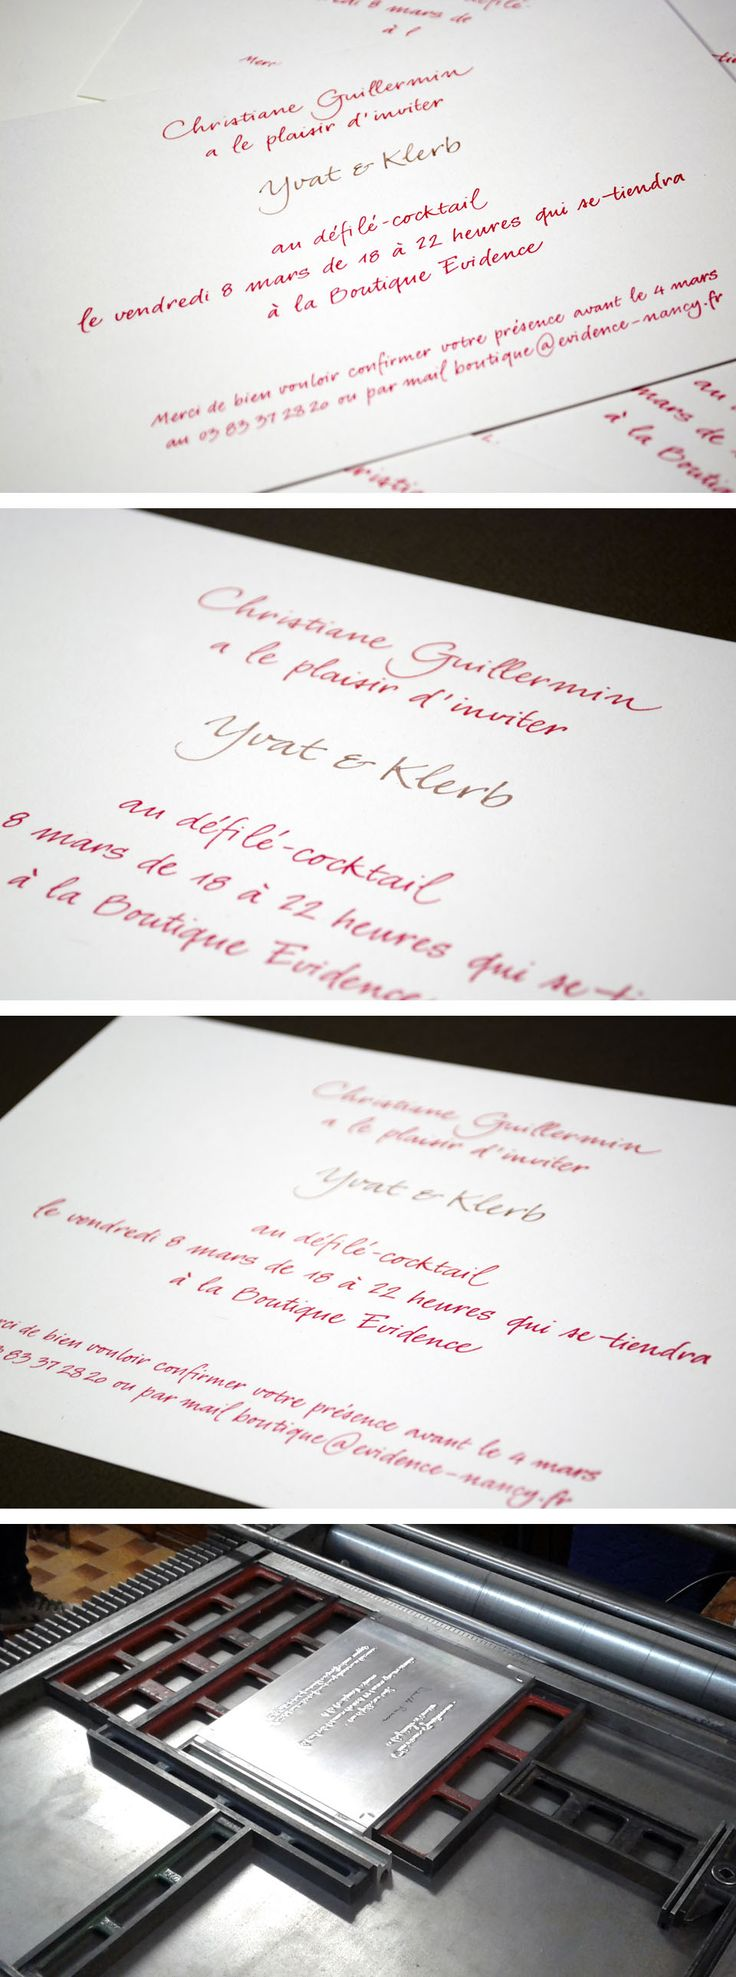 Yvat and Klerb teamed up with Billiotte and Co to design a unique calligraphical lettepress invite | http://www.y-k.it